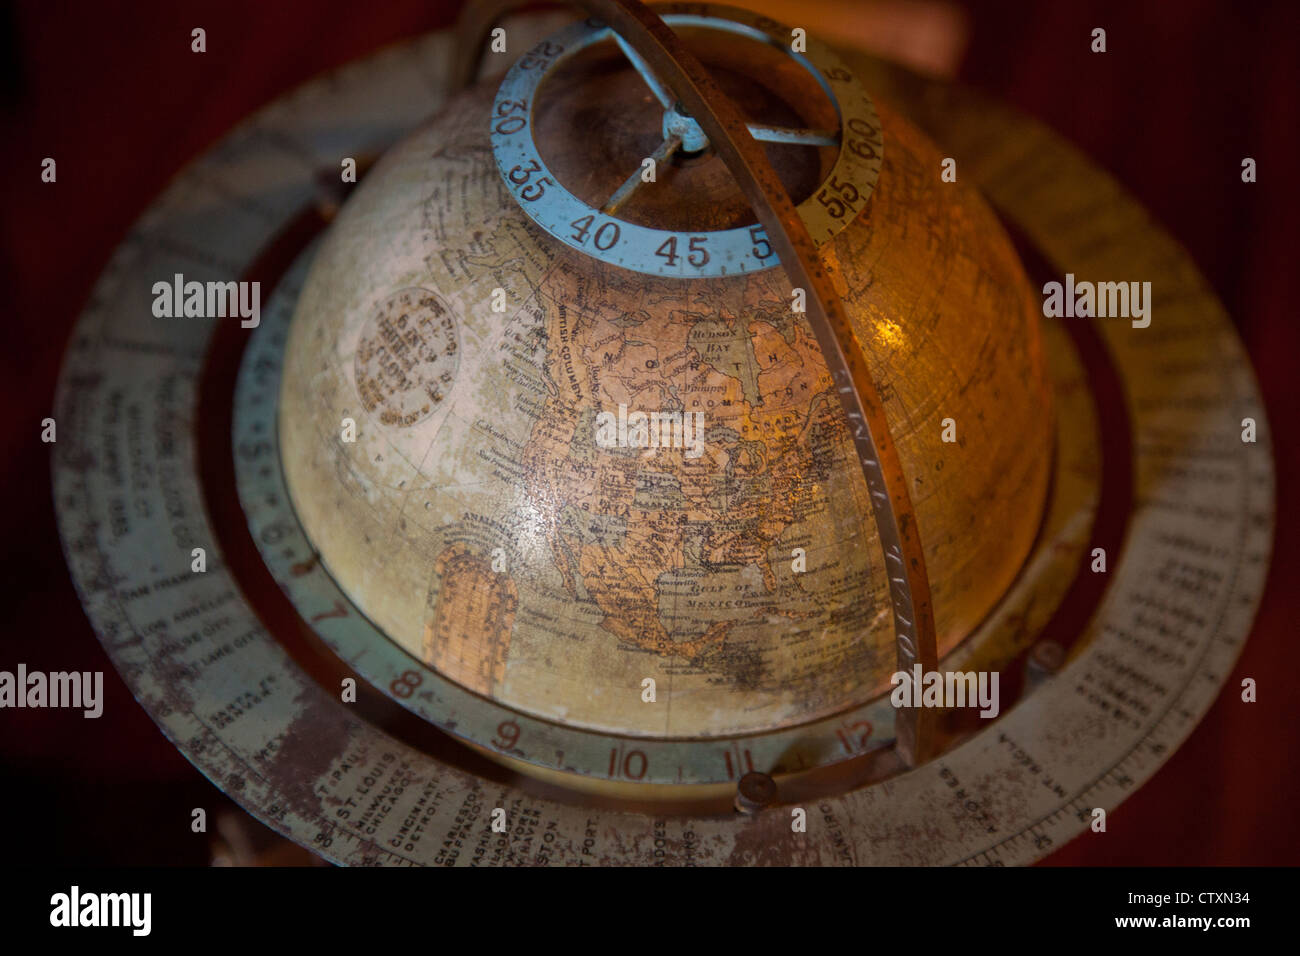 American Clock and Watch Museum in Bristol CT - Stock Image